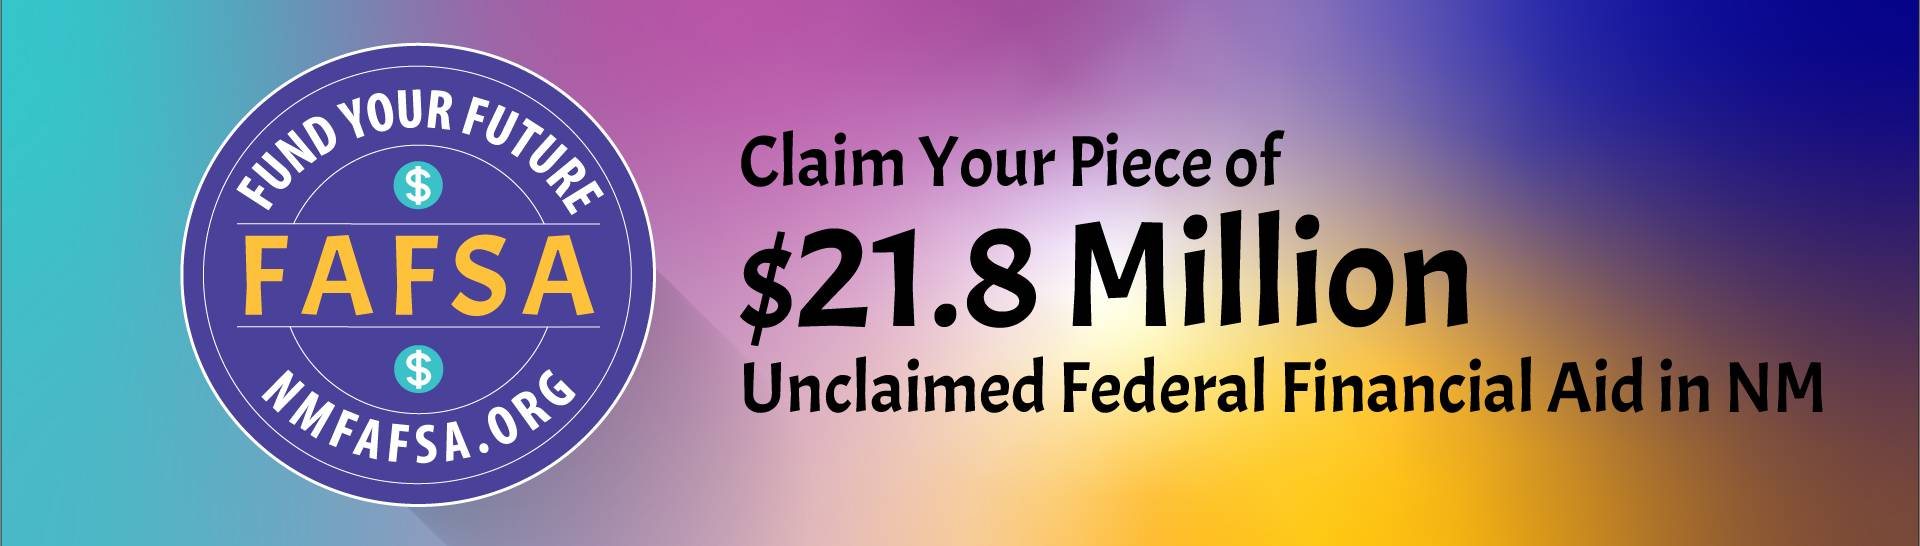 NM FAFSA Fund Your Future Logo - Claim your Piece of $21.8 Million Unclaimed Federal Financial Aid in NM